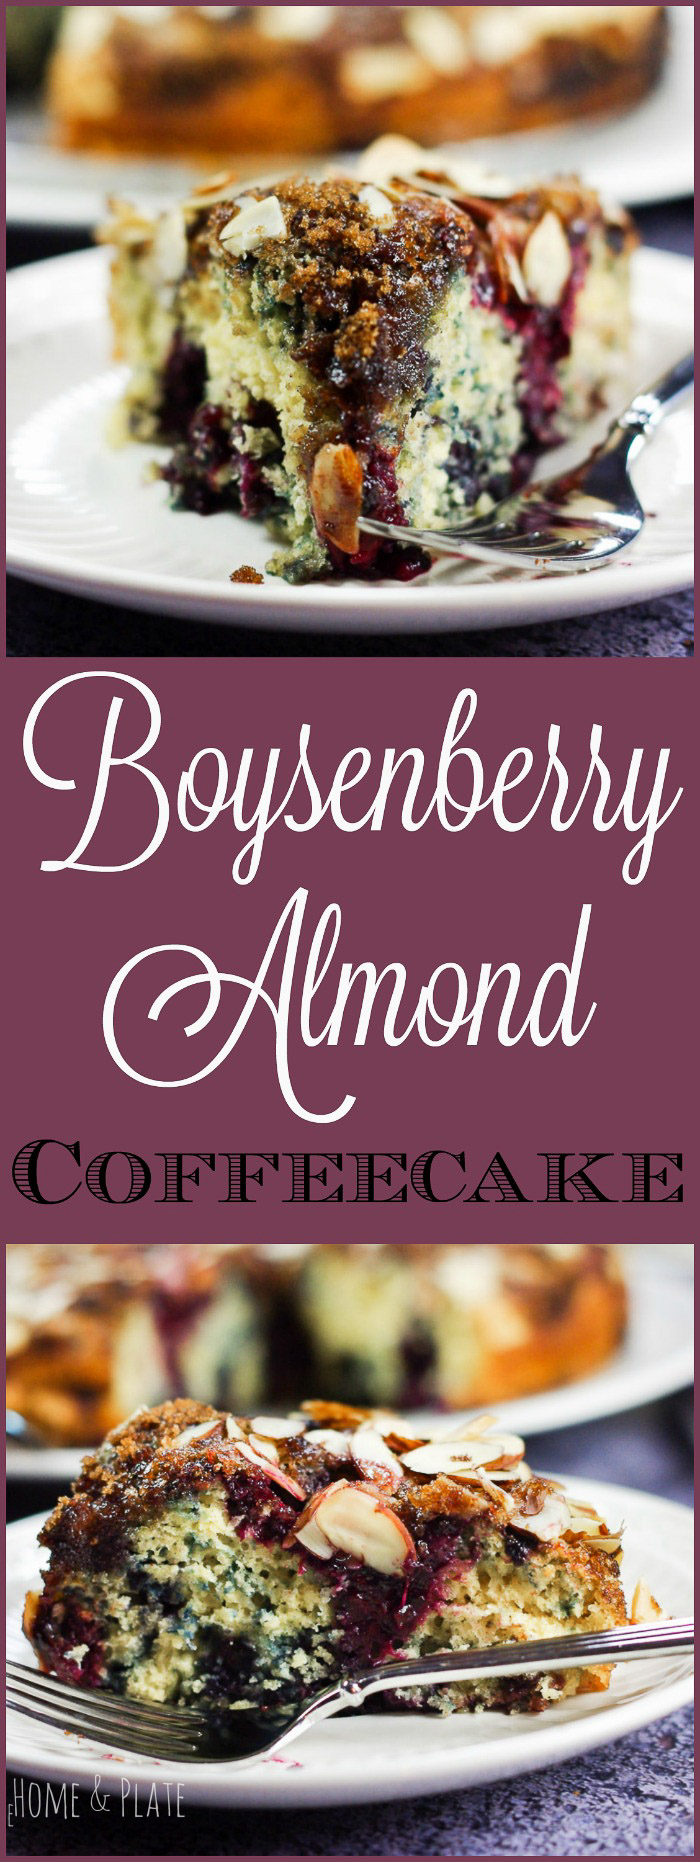 Boysenberry Crunch Coffeecake | www.homeandplate.com | Enjoy cake anytime of the day with this moist and crunchy boysenberry coffeecake.